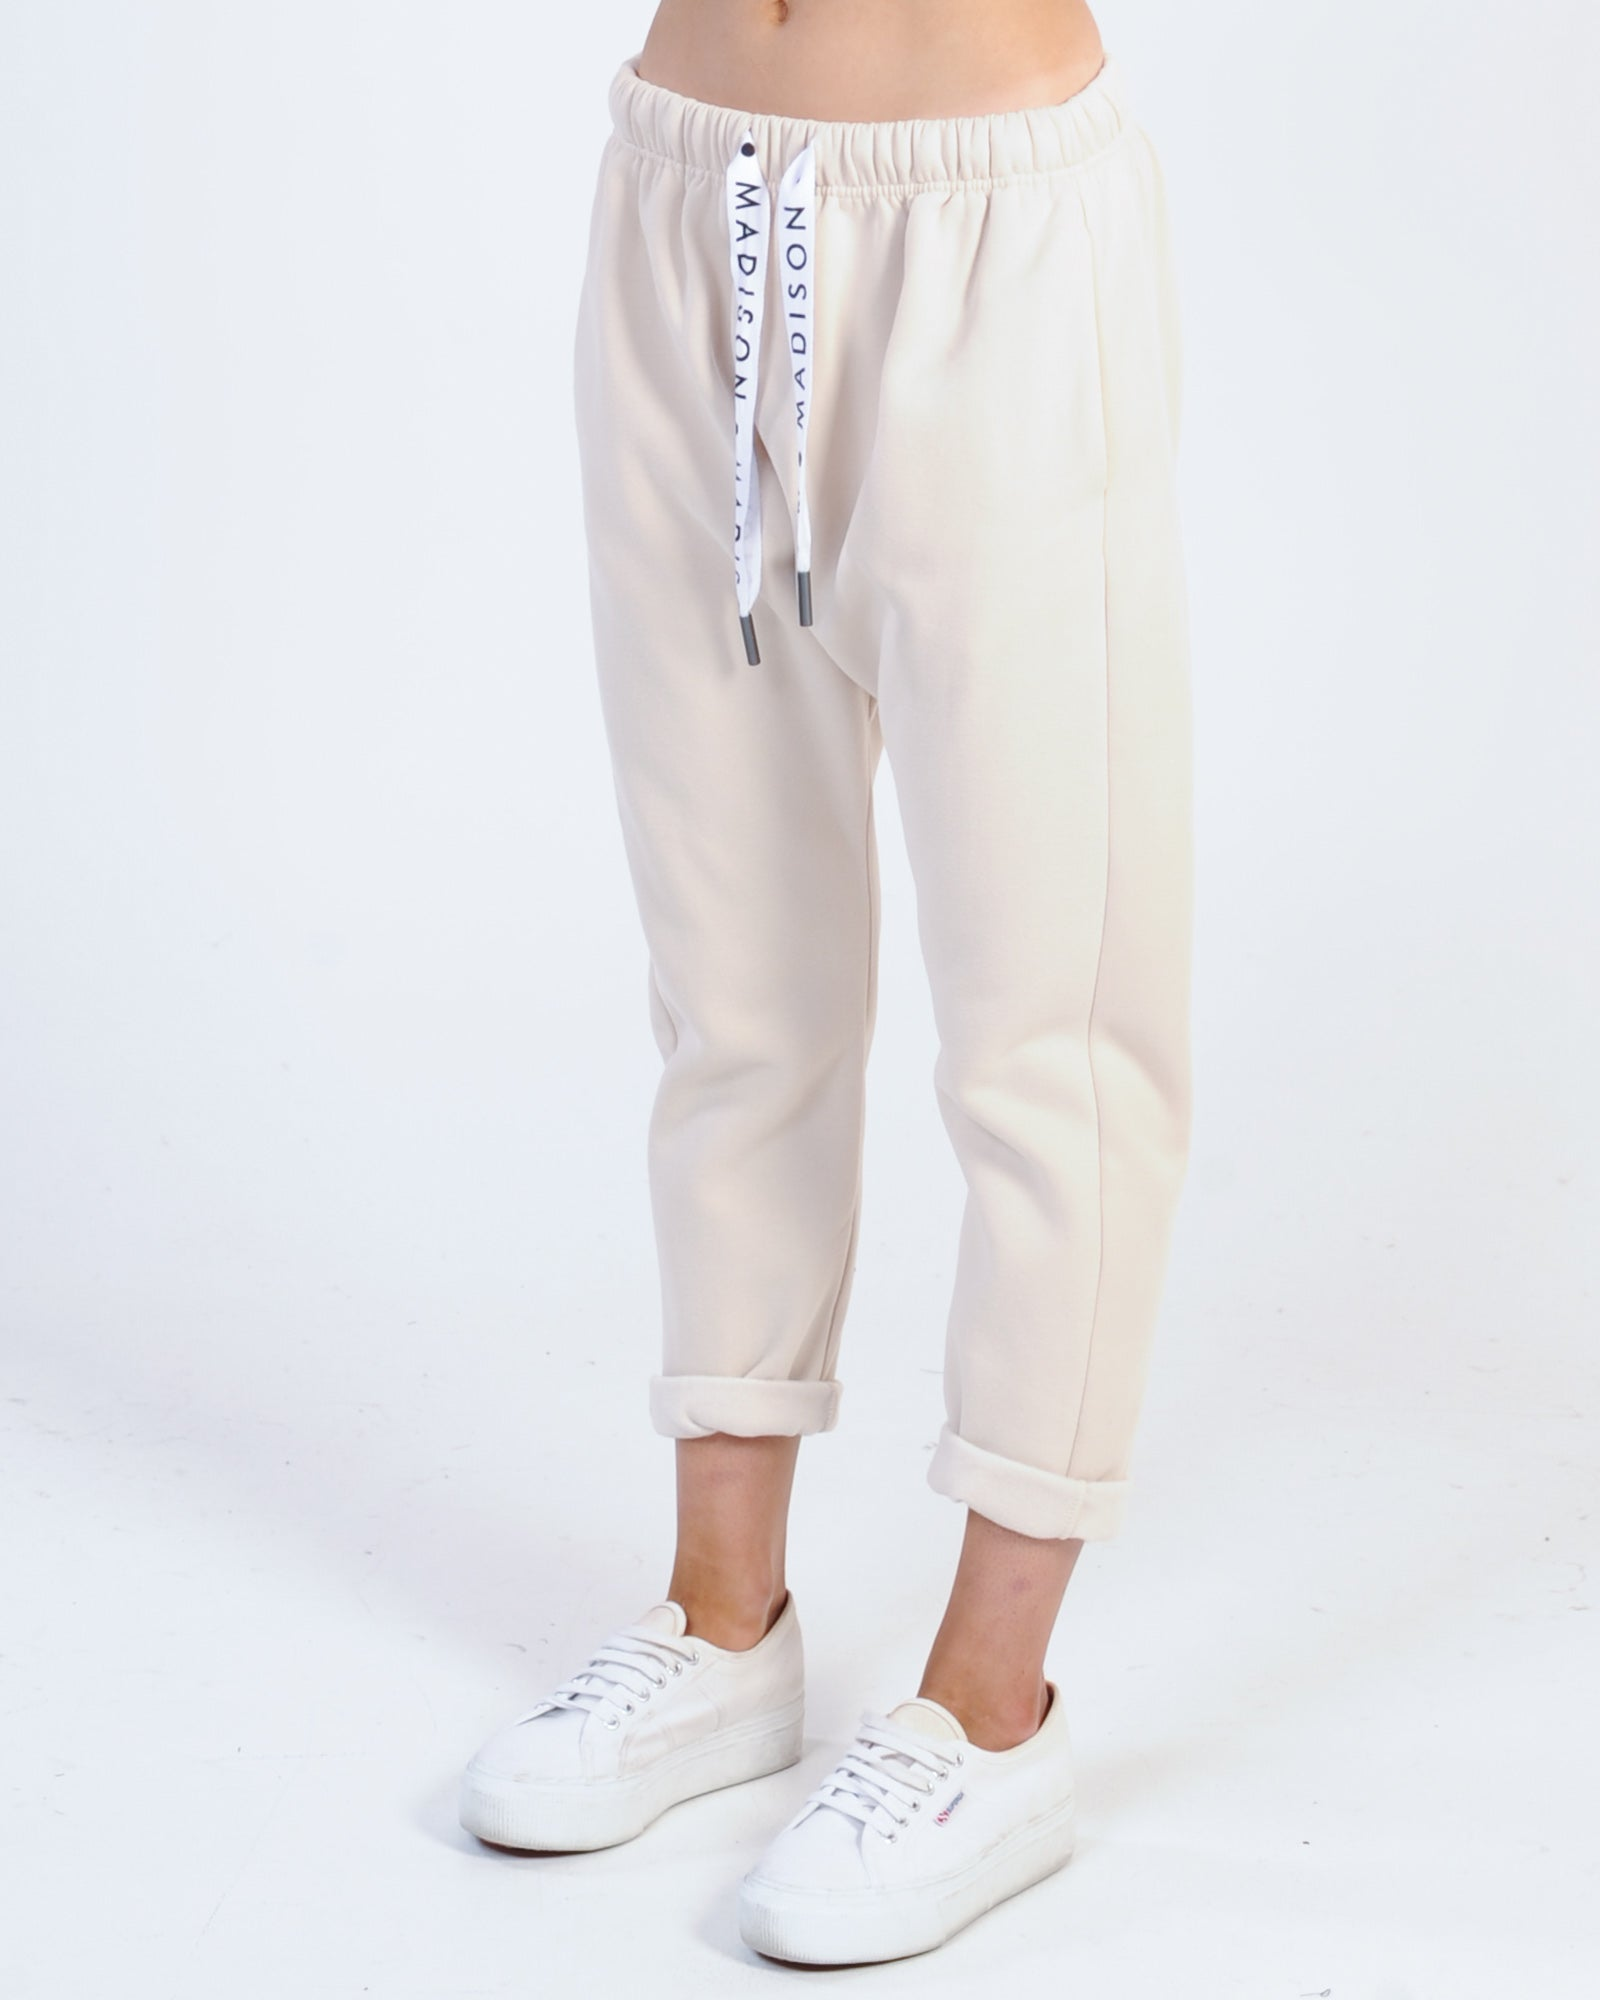 Madison The Label Cody Drop Crotch Pants - Sand